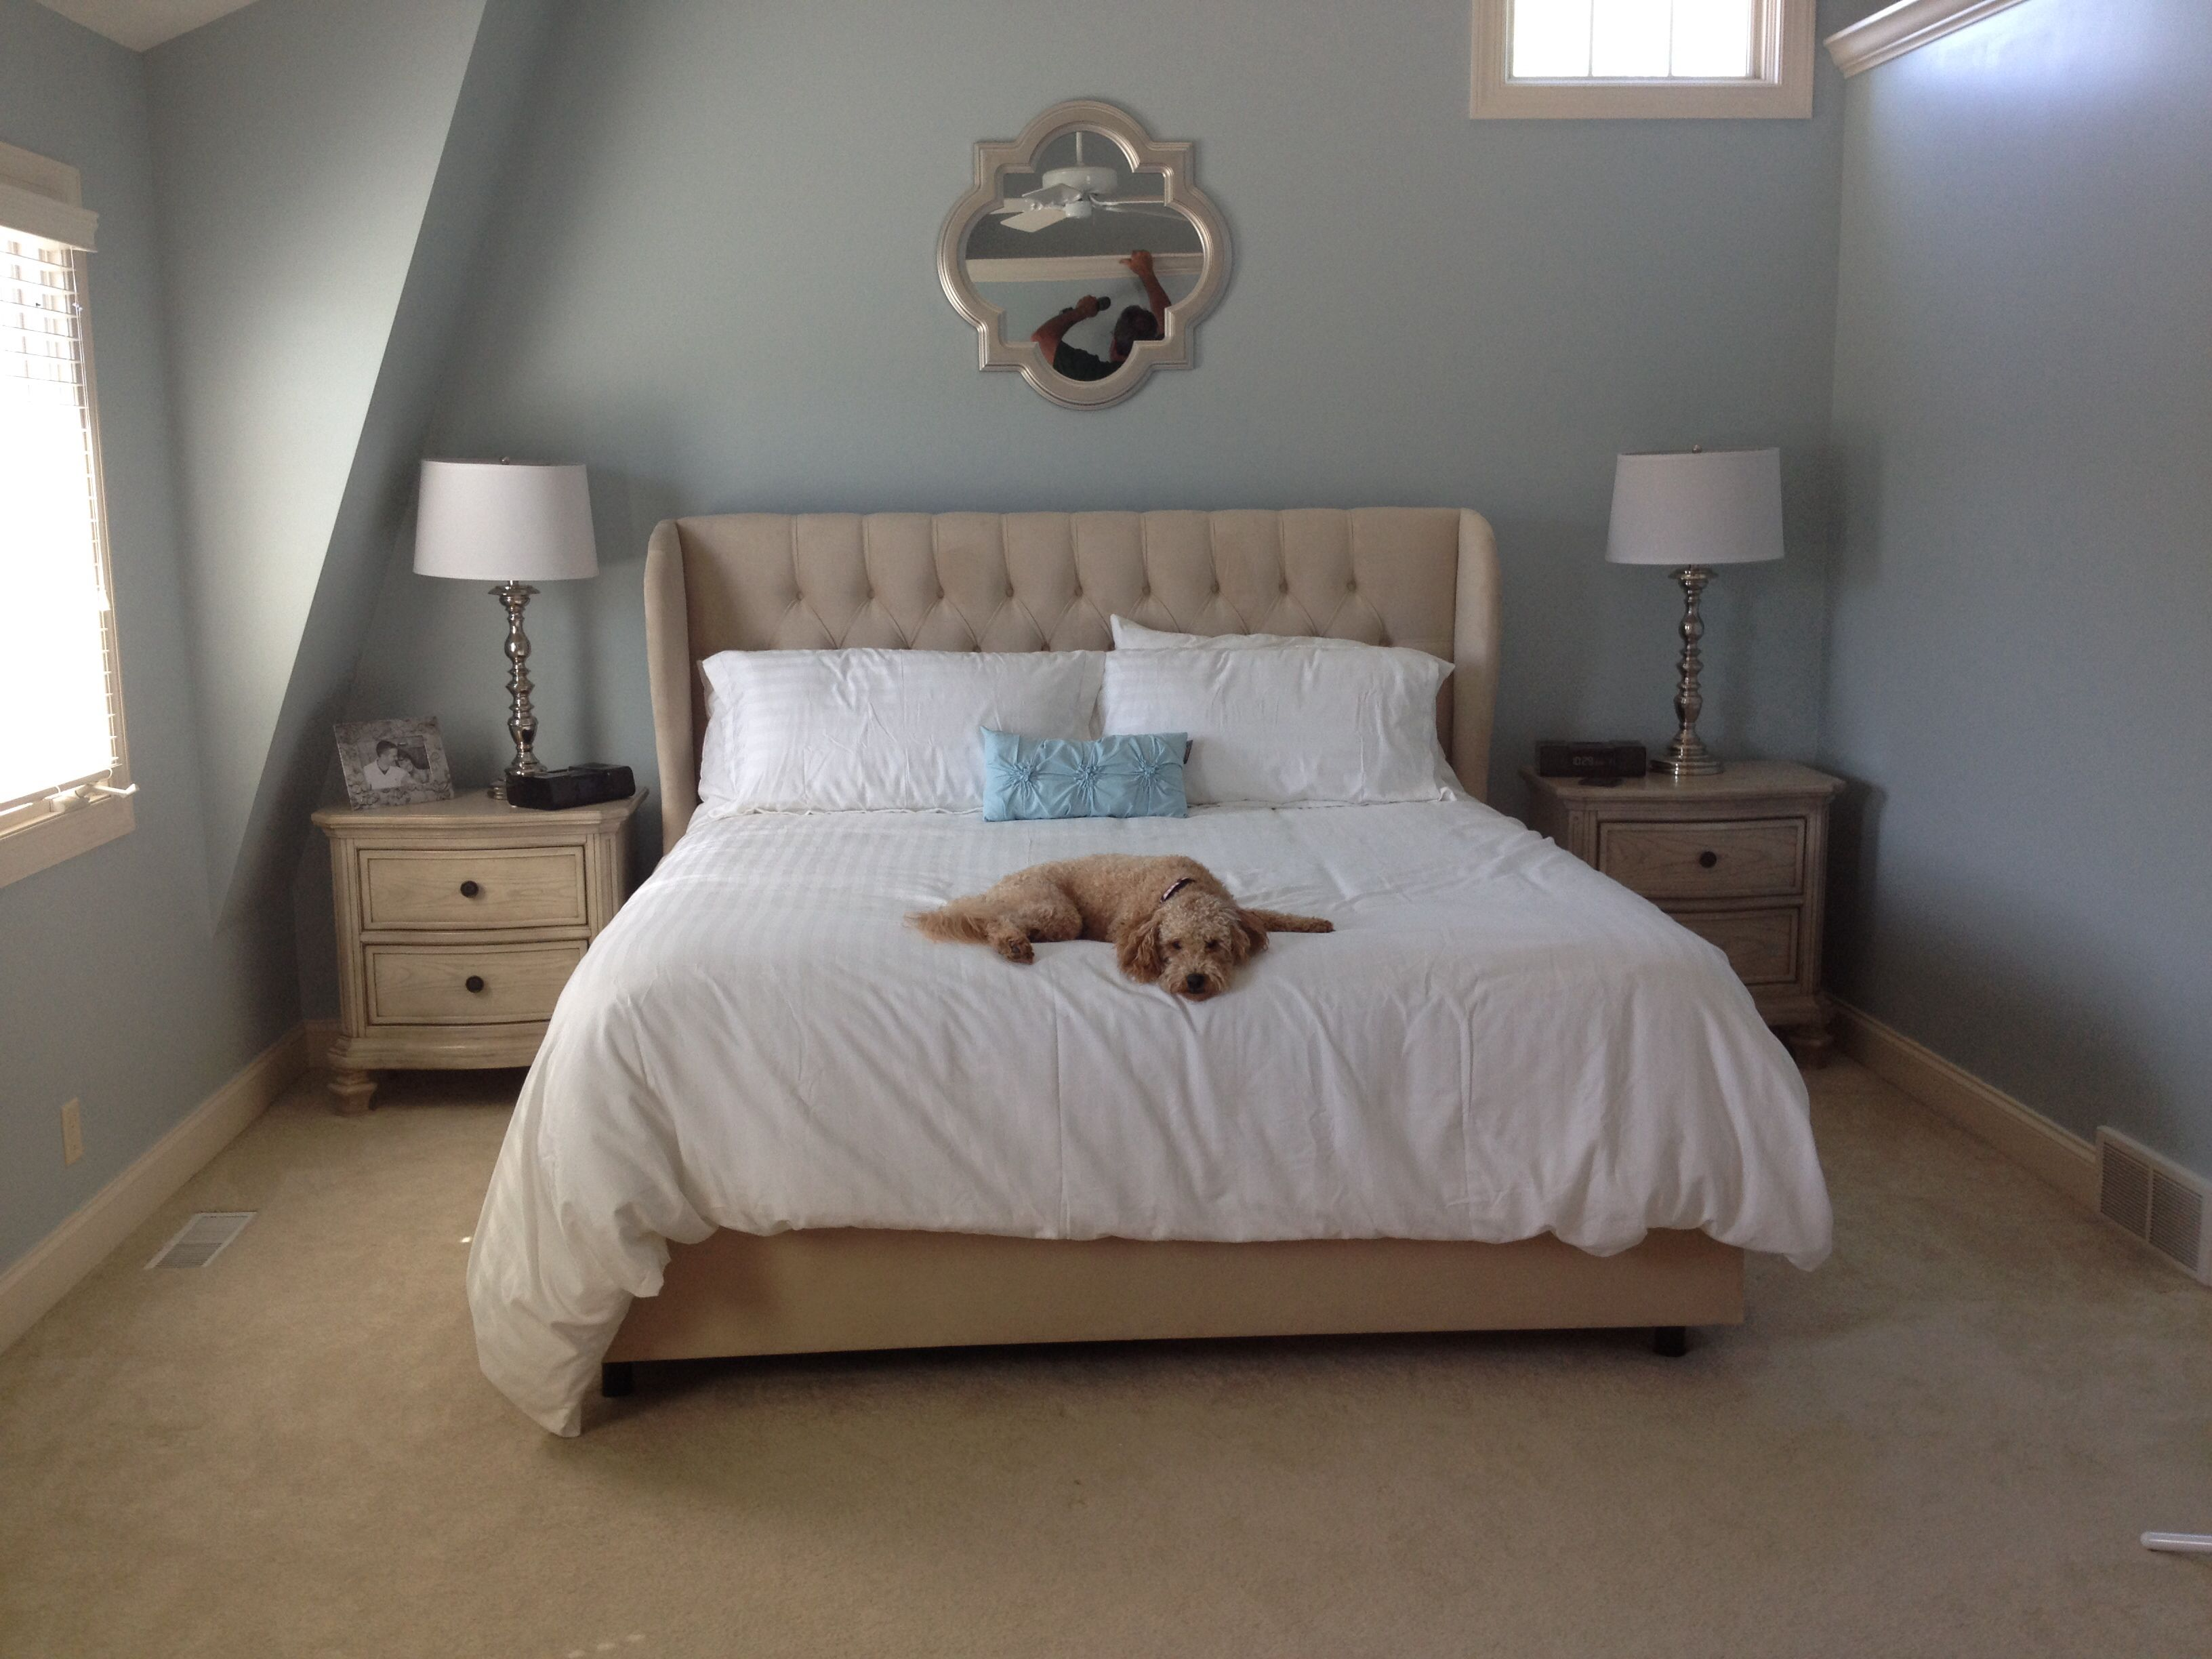 Our master bedroom. Sleepy Blue Sherwin Williams, light blue paint